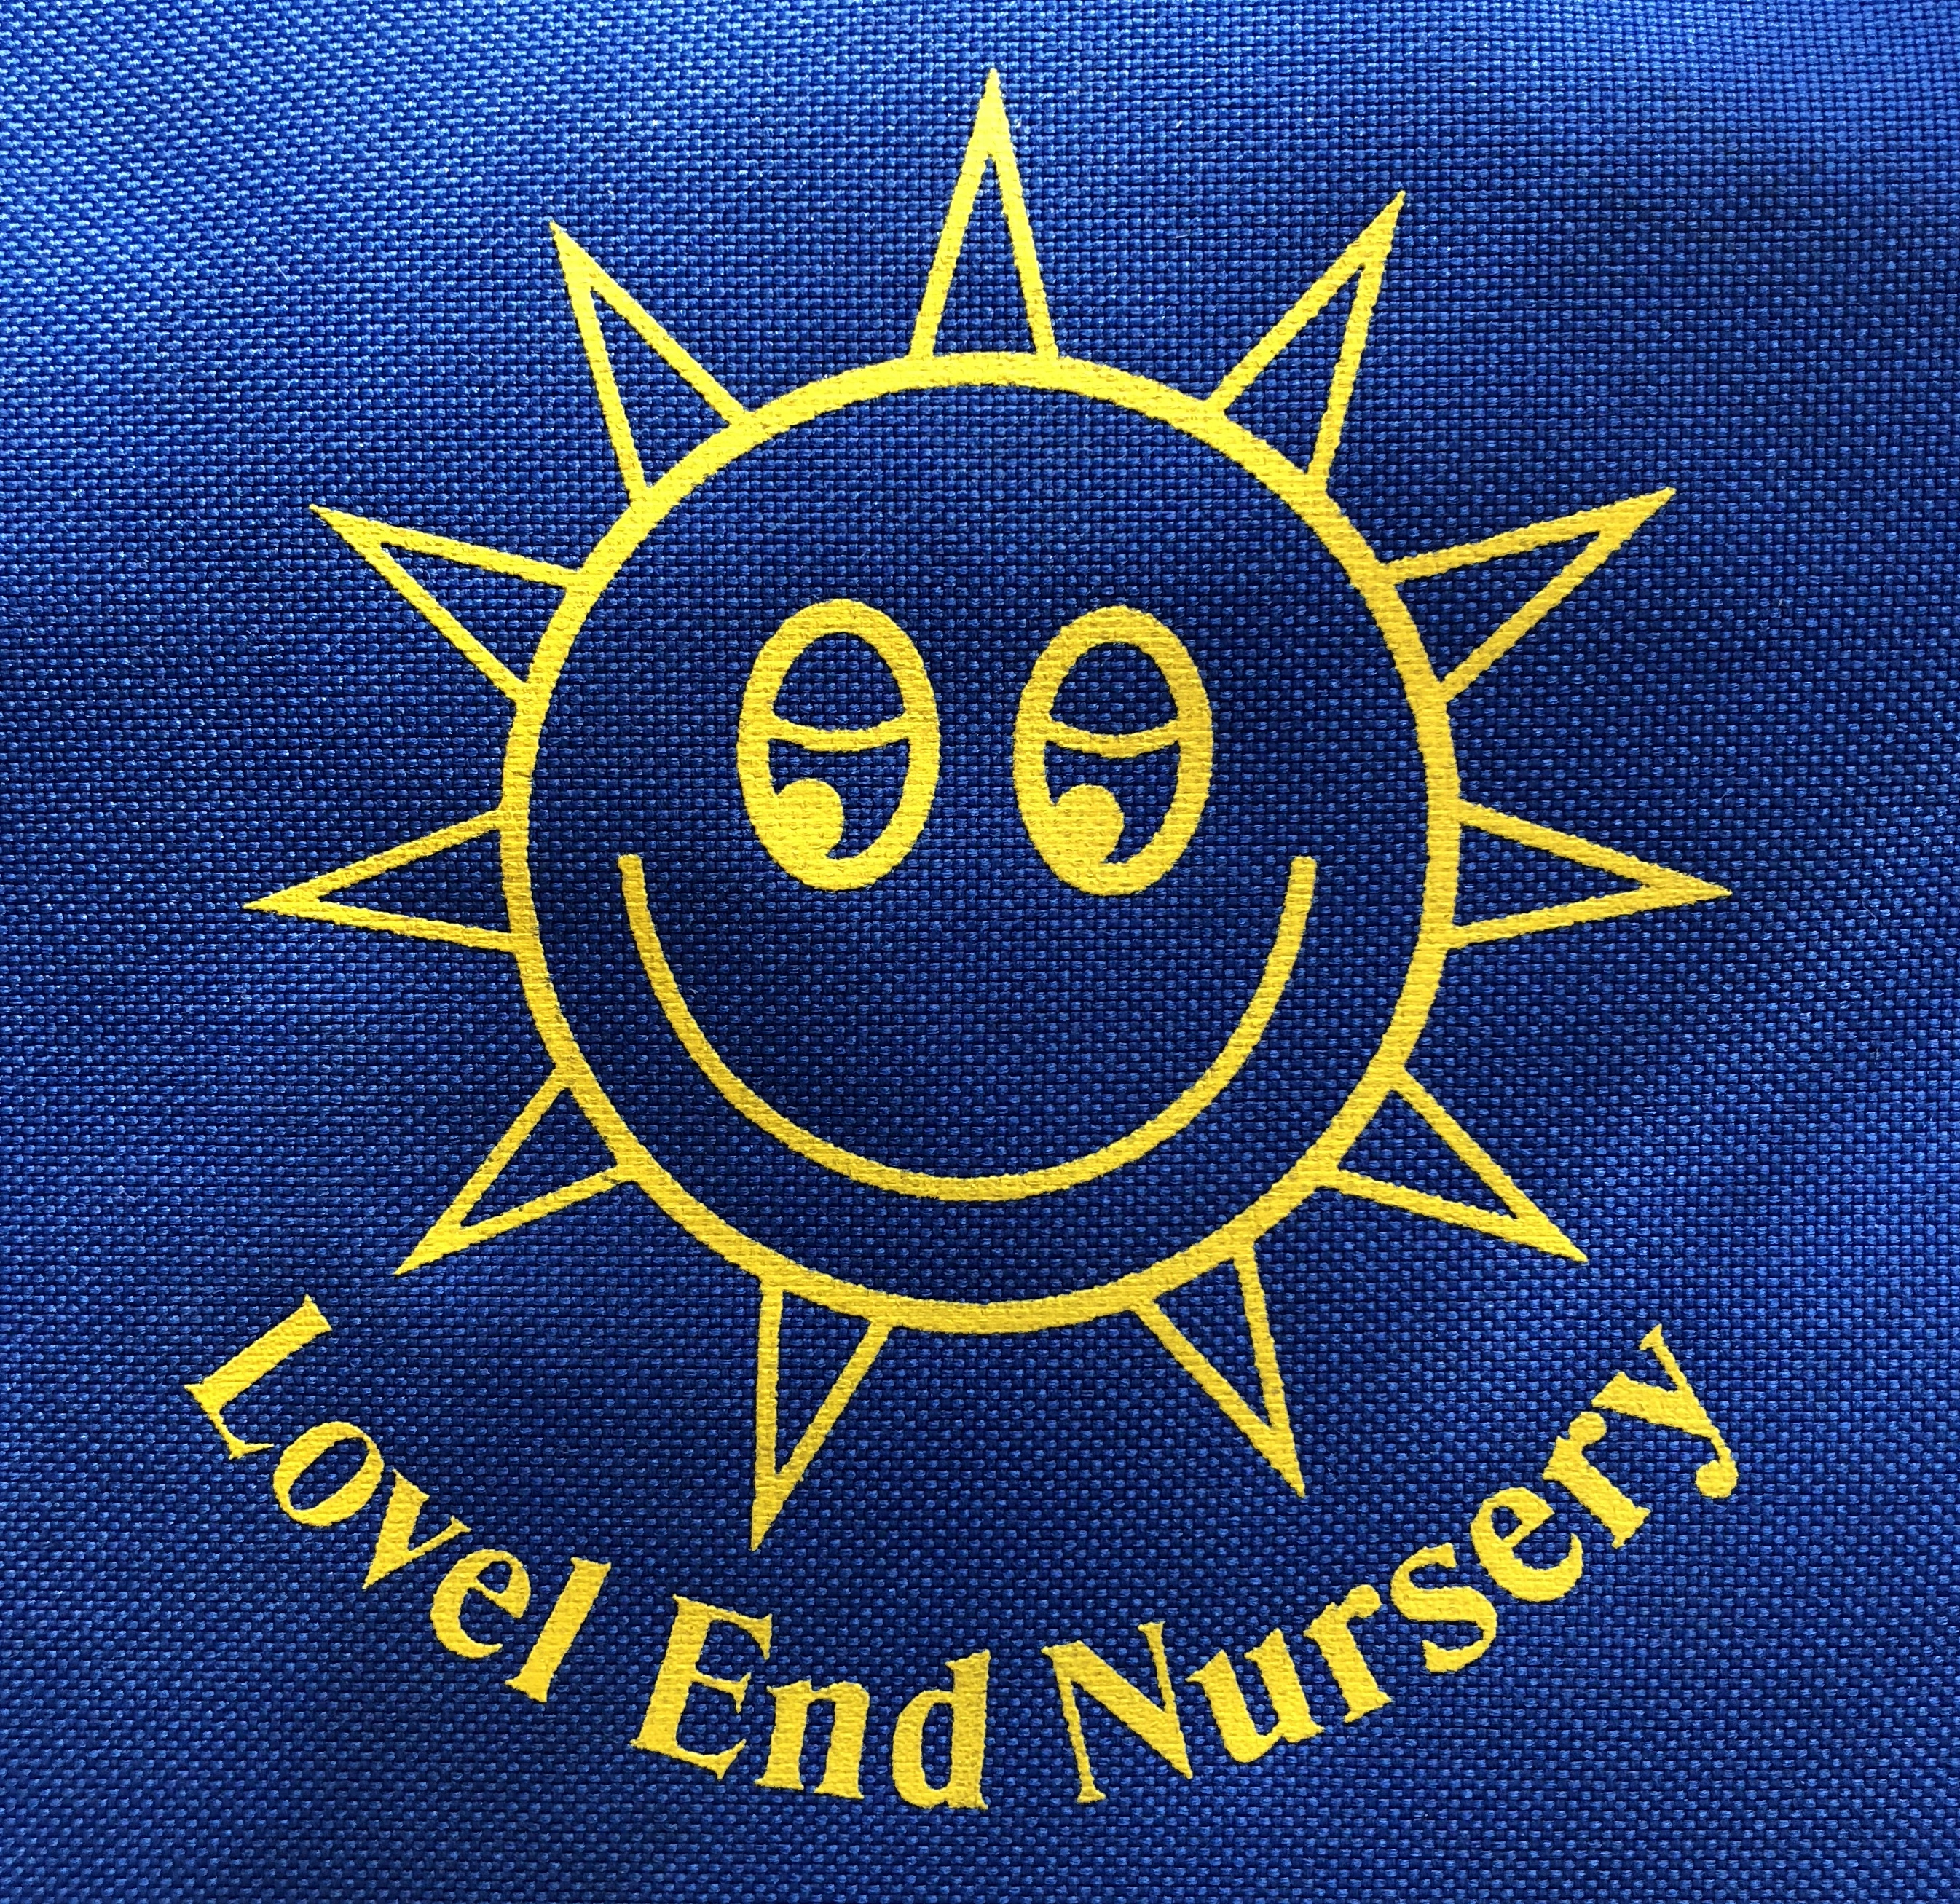 Lovel End Nursery - Gerrards Cross